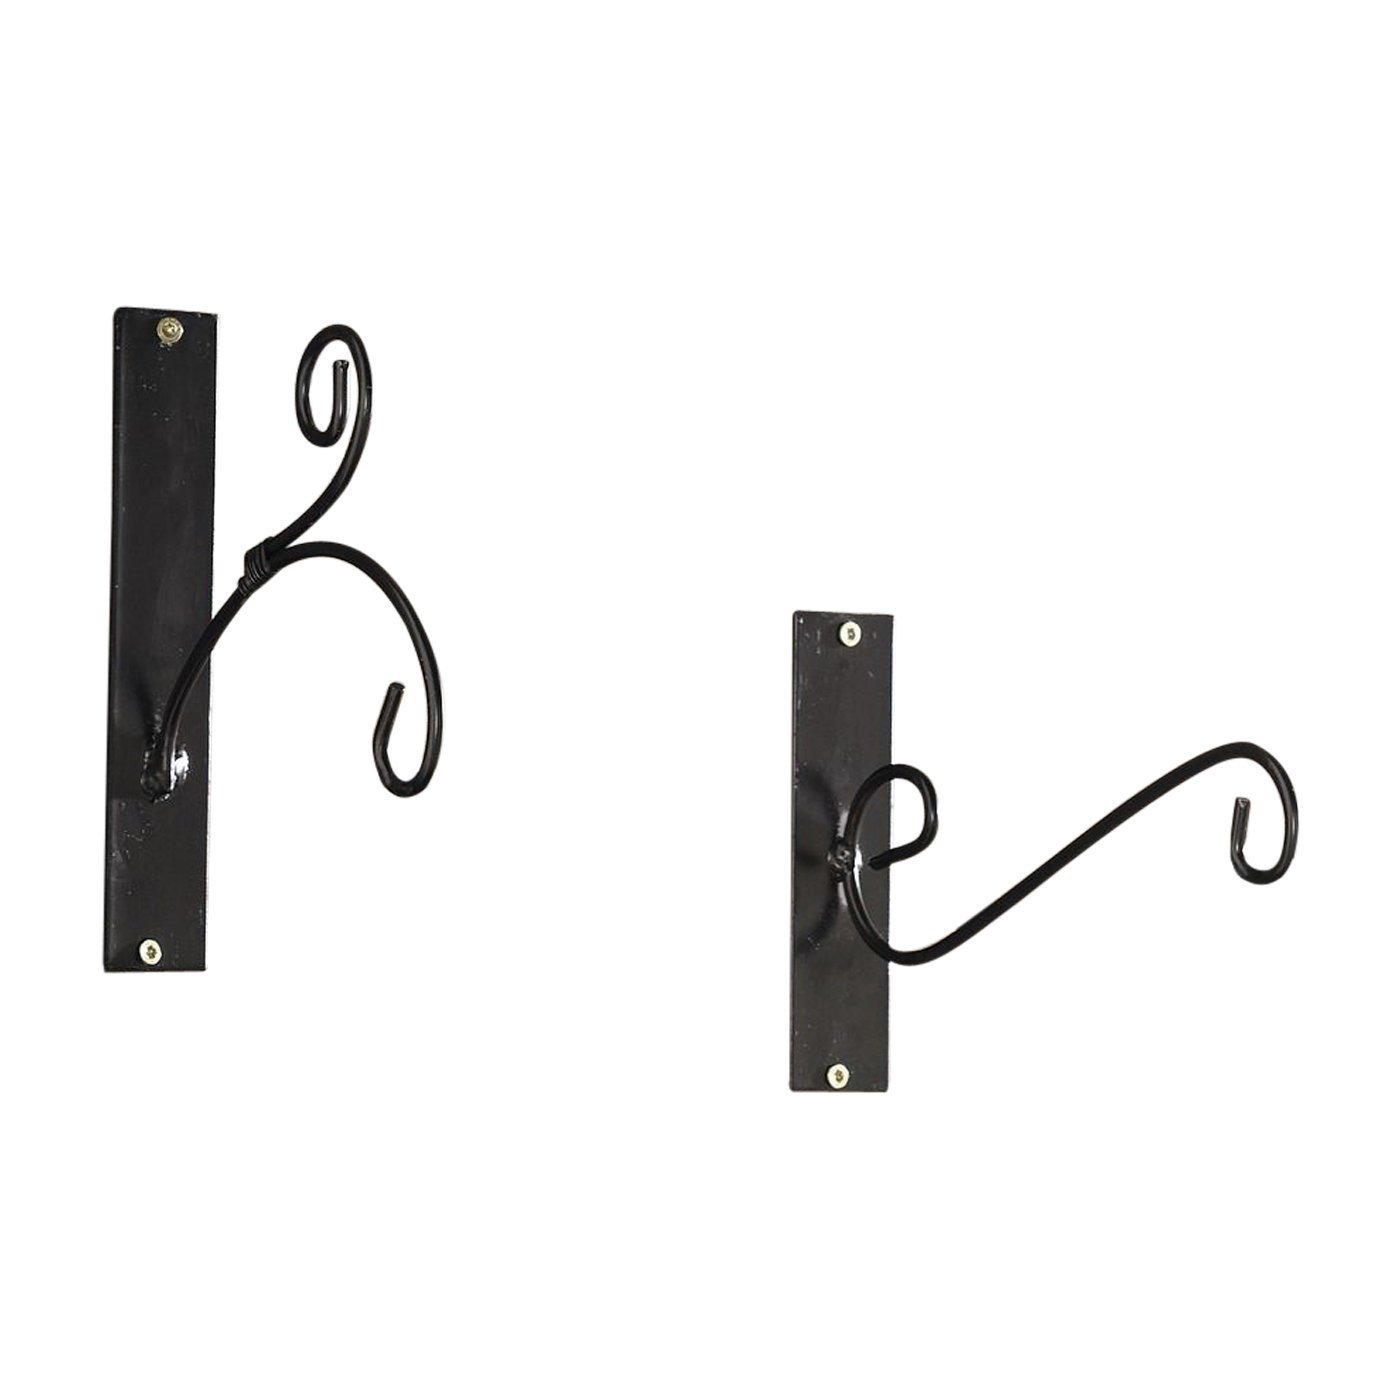 Metal Wall Hangers, Set of Two, for Lanterns,Feeders,Planters,Chimes,Ornaments Product SKU: HD221825